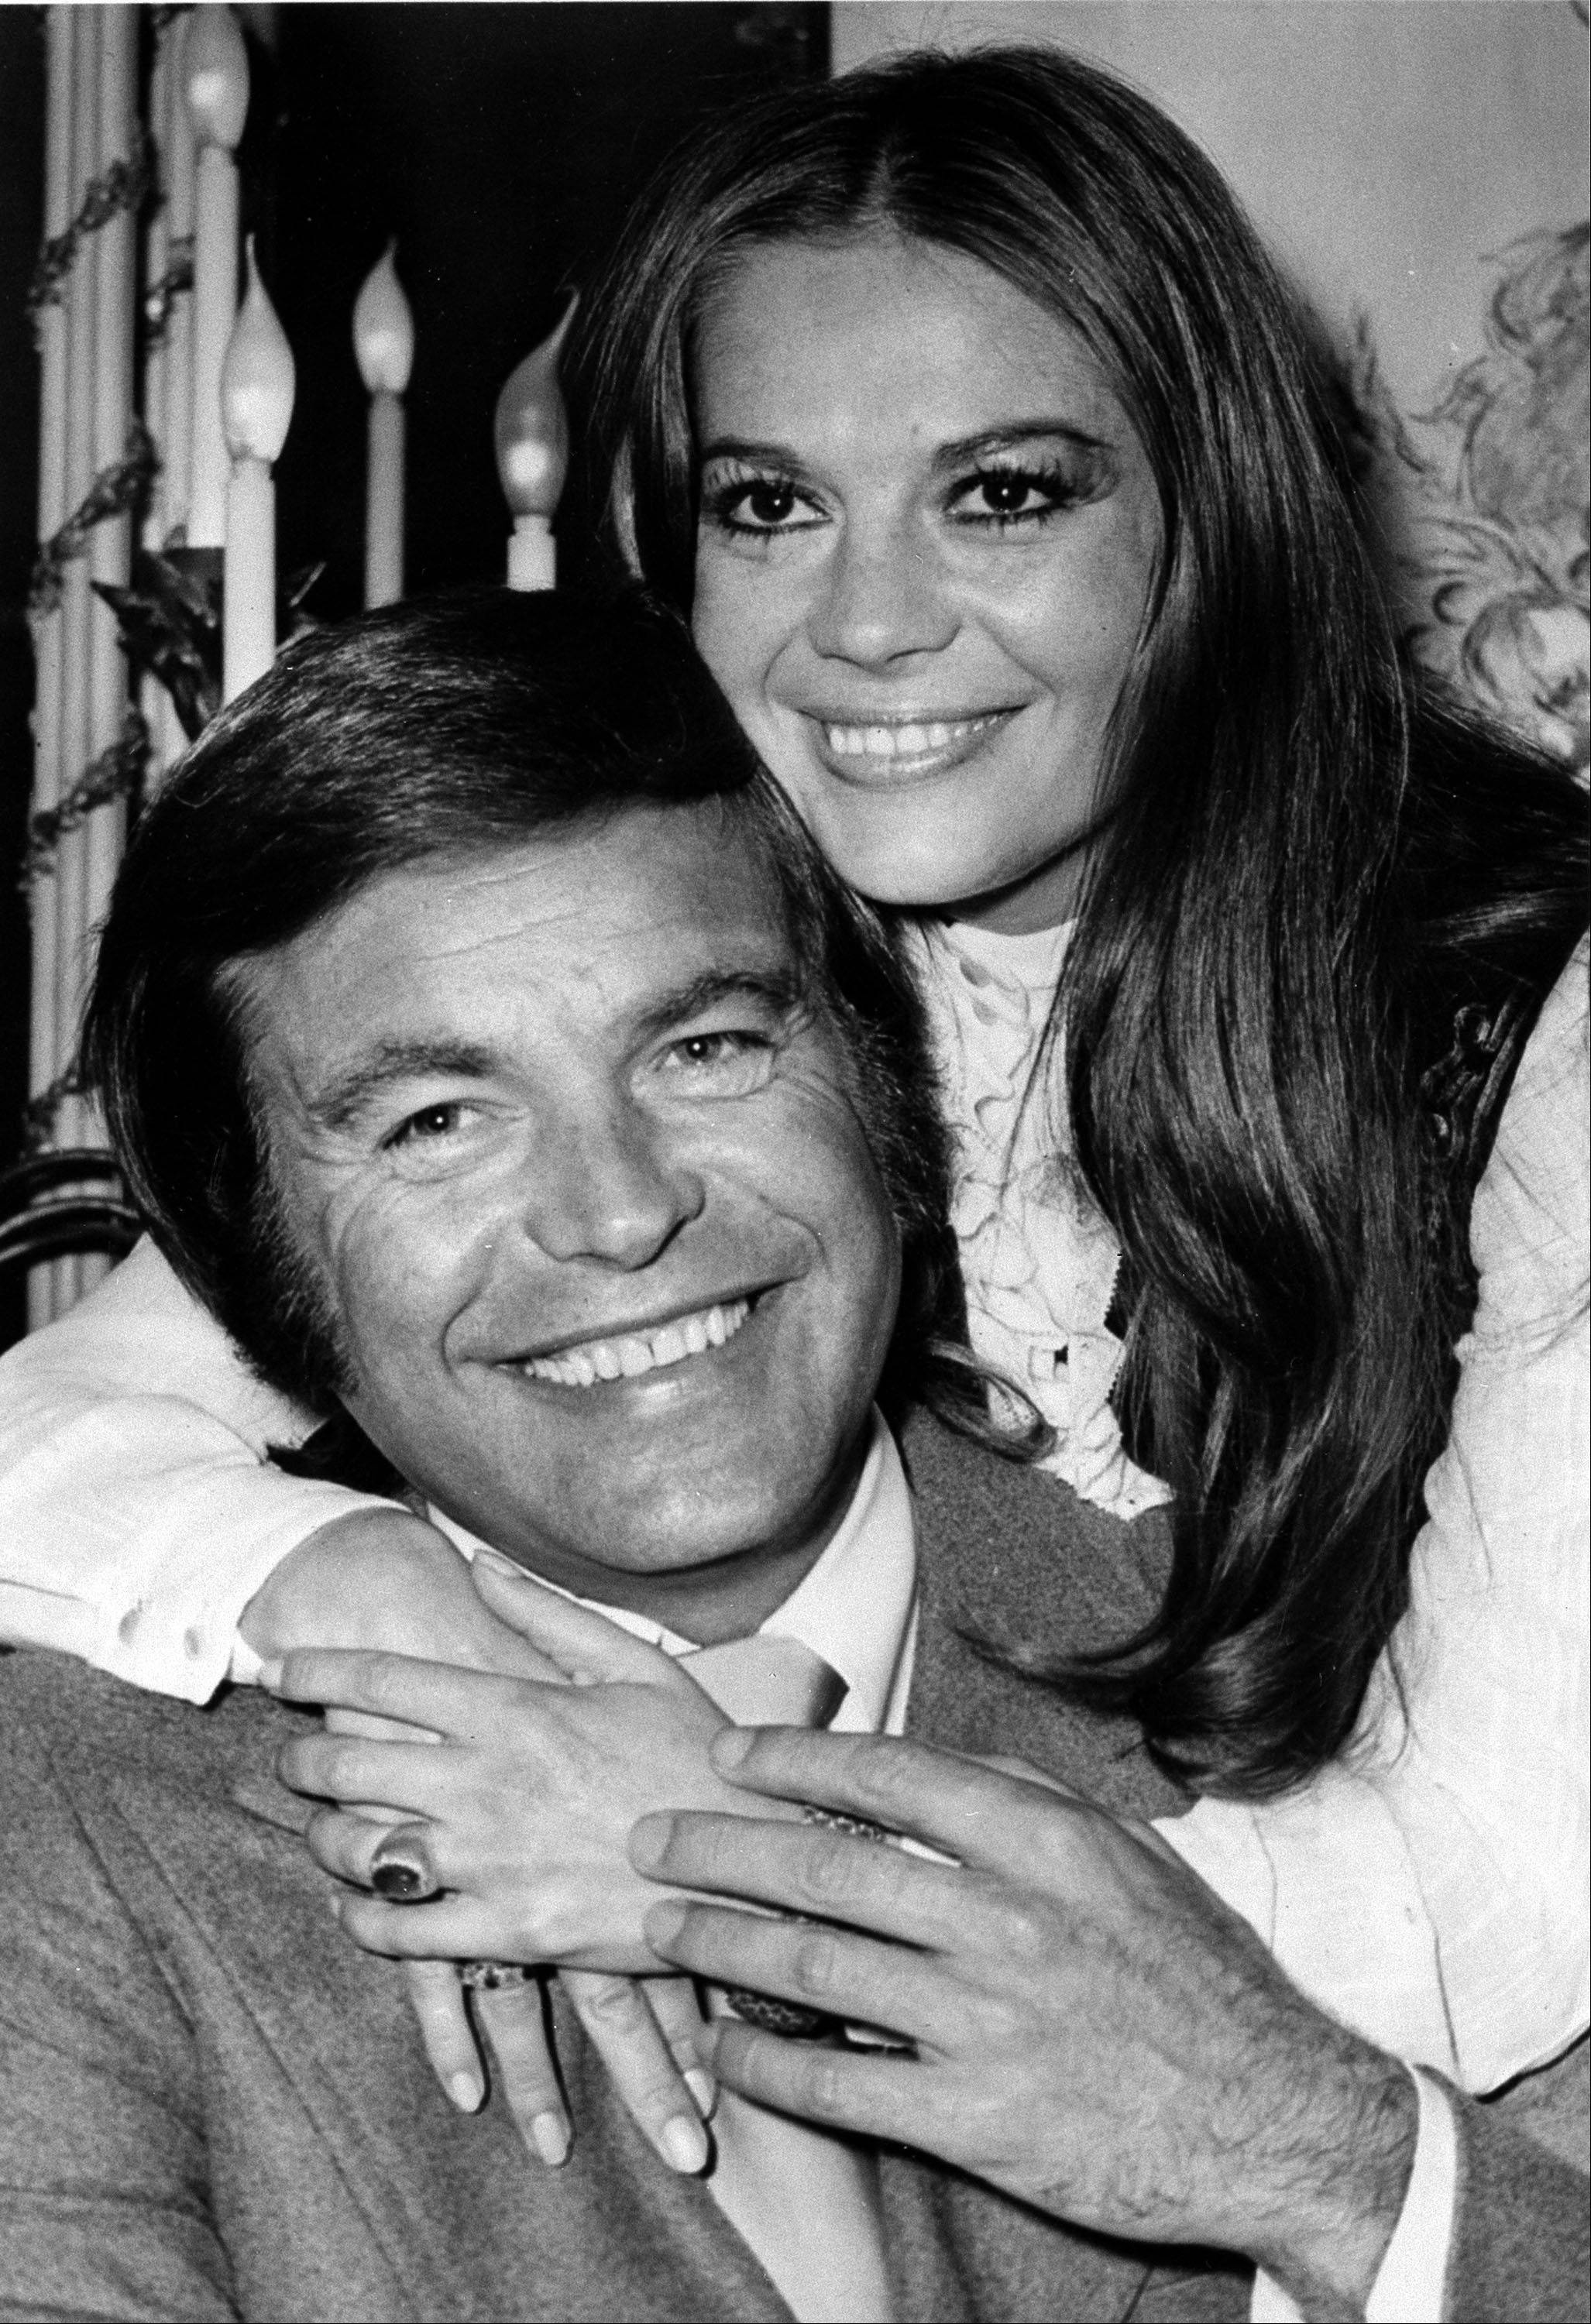 In this April 23, 1972 file photo, actor Robert Wagner and actress Natalie Wood pose at the Dorchester Hotel in London. Los Angeles sheriff's homicide detectives are taking another look at Wood's 1981 drowning death based on new information, officials announced Thursday, Nov. 17, 2011. A yacht captain said on national TV Friday, Nov. 18, 2011, that he lied to investigators about Natalie Wood's mysterious death 30 years ago and blames Wagner for her drowning in the ocean off Southern California. (AP Photo, File)